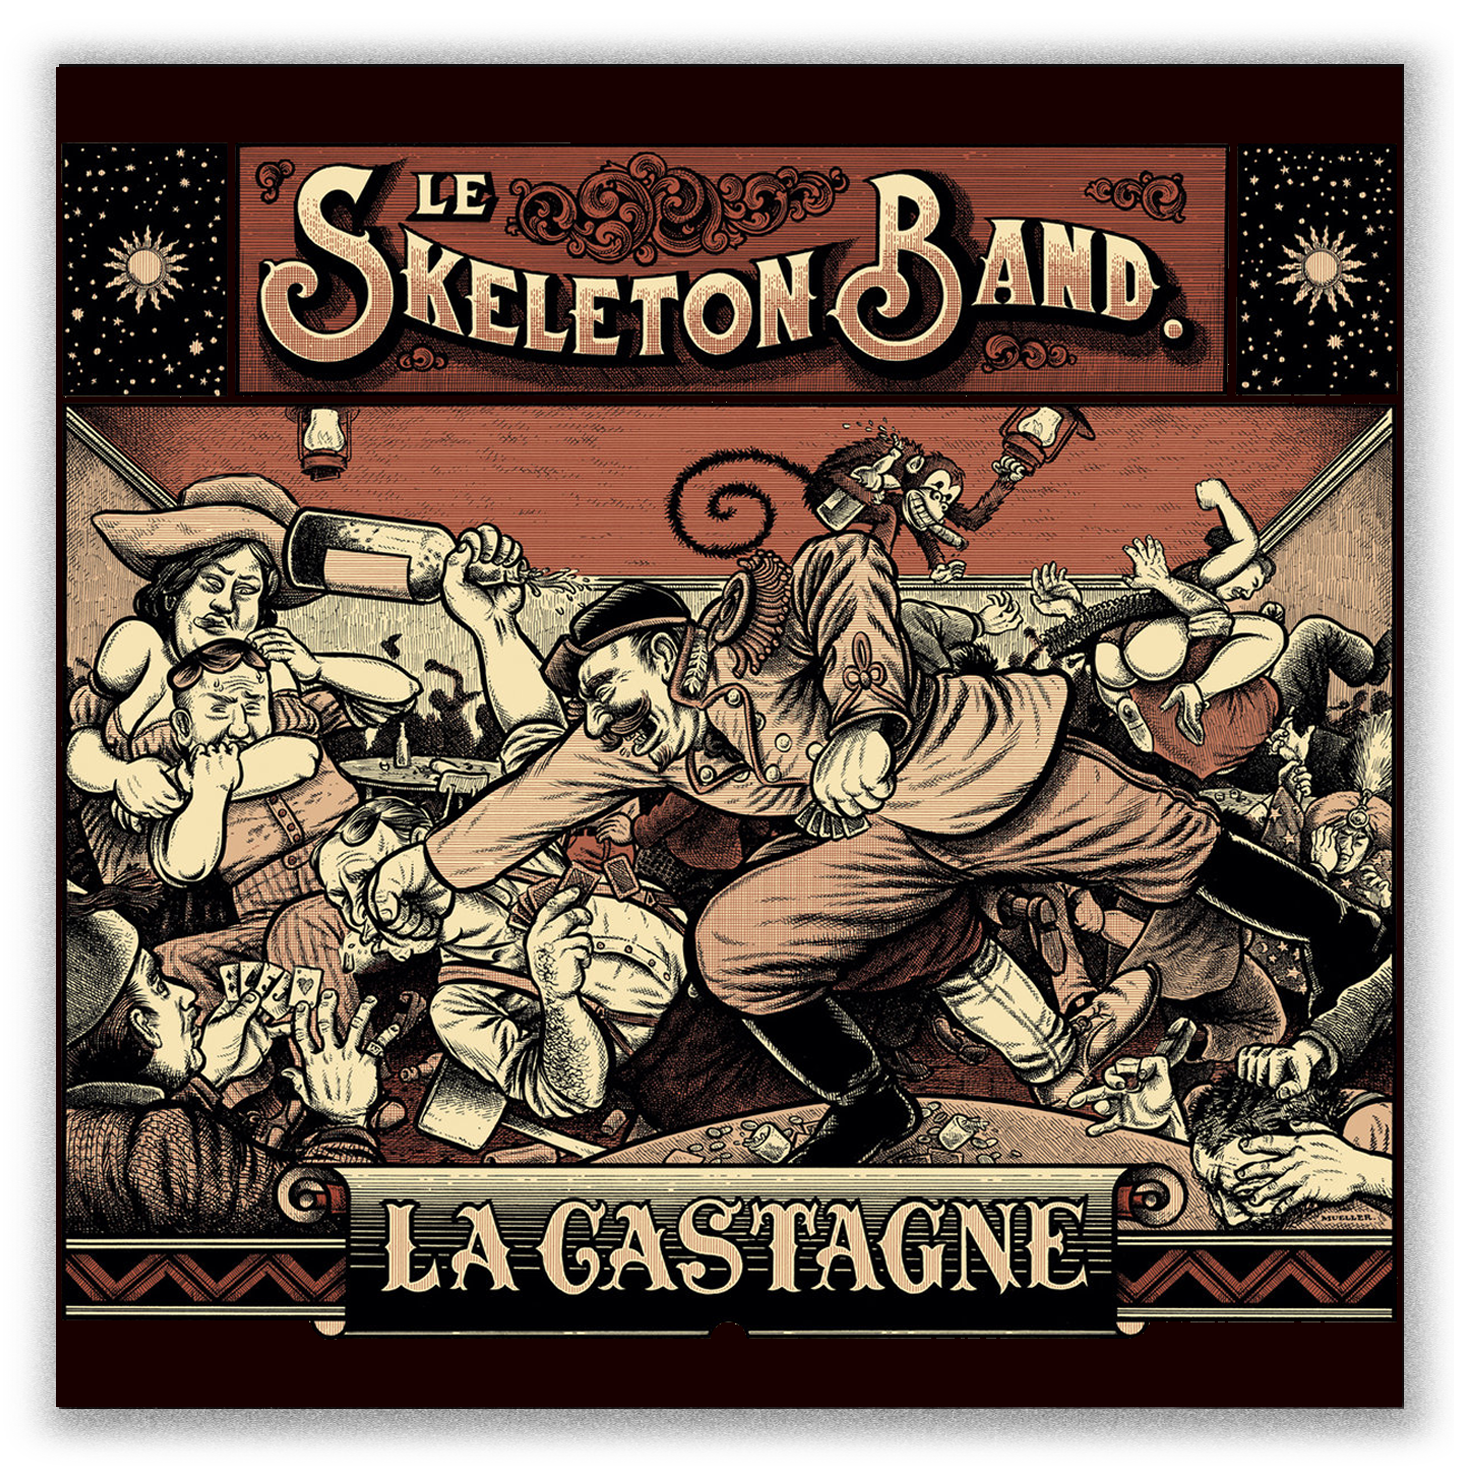 Le Skeleton Band La Castagne artwork by Christoph Mueller